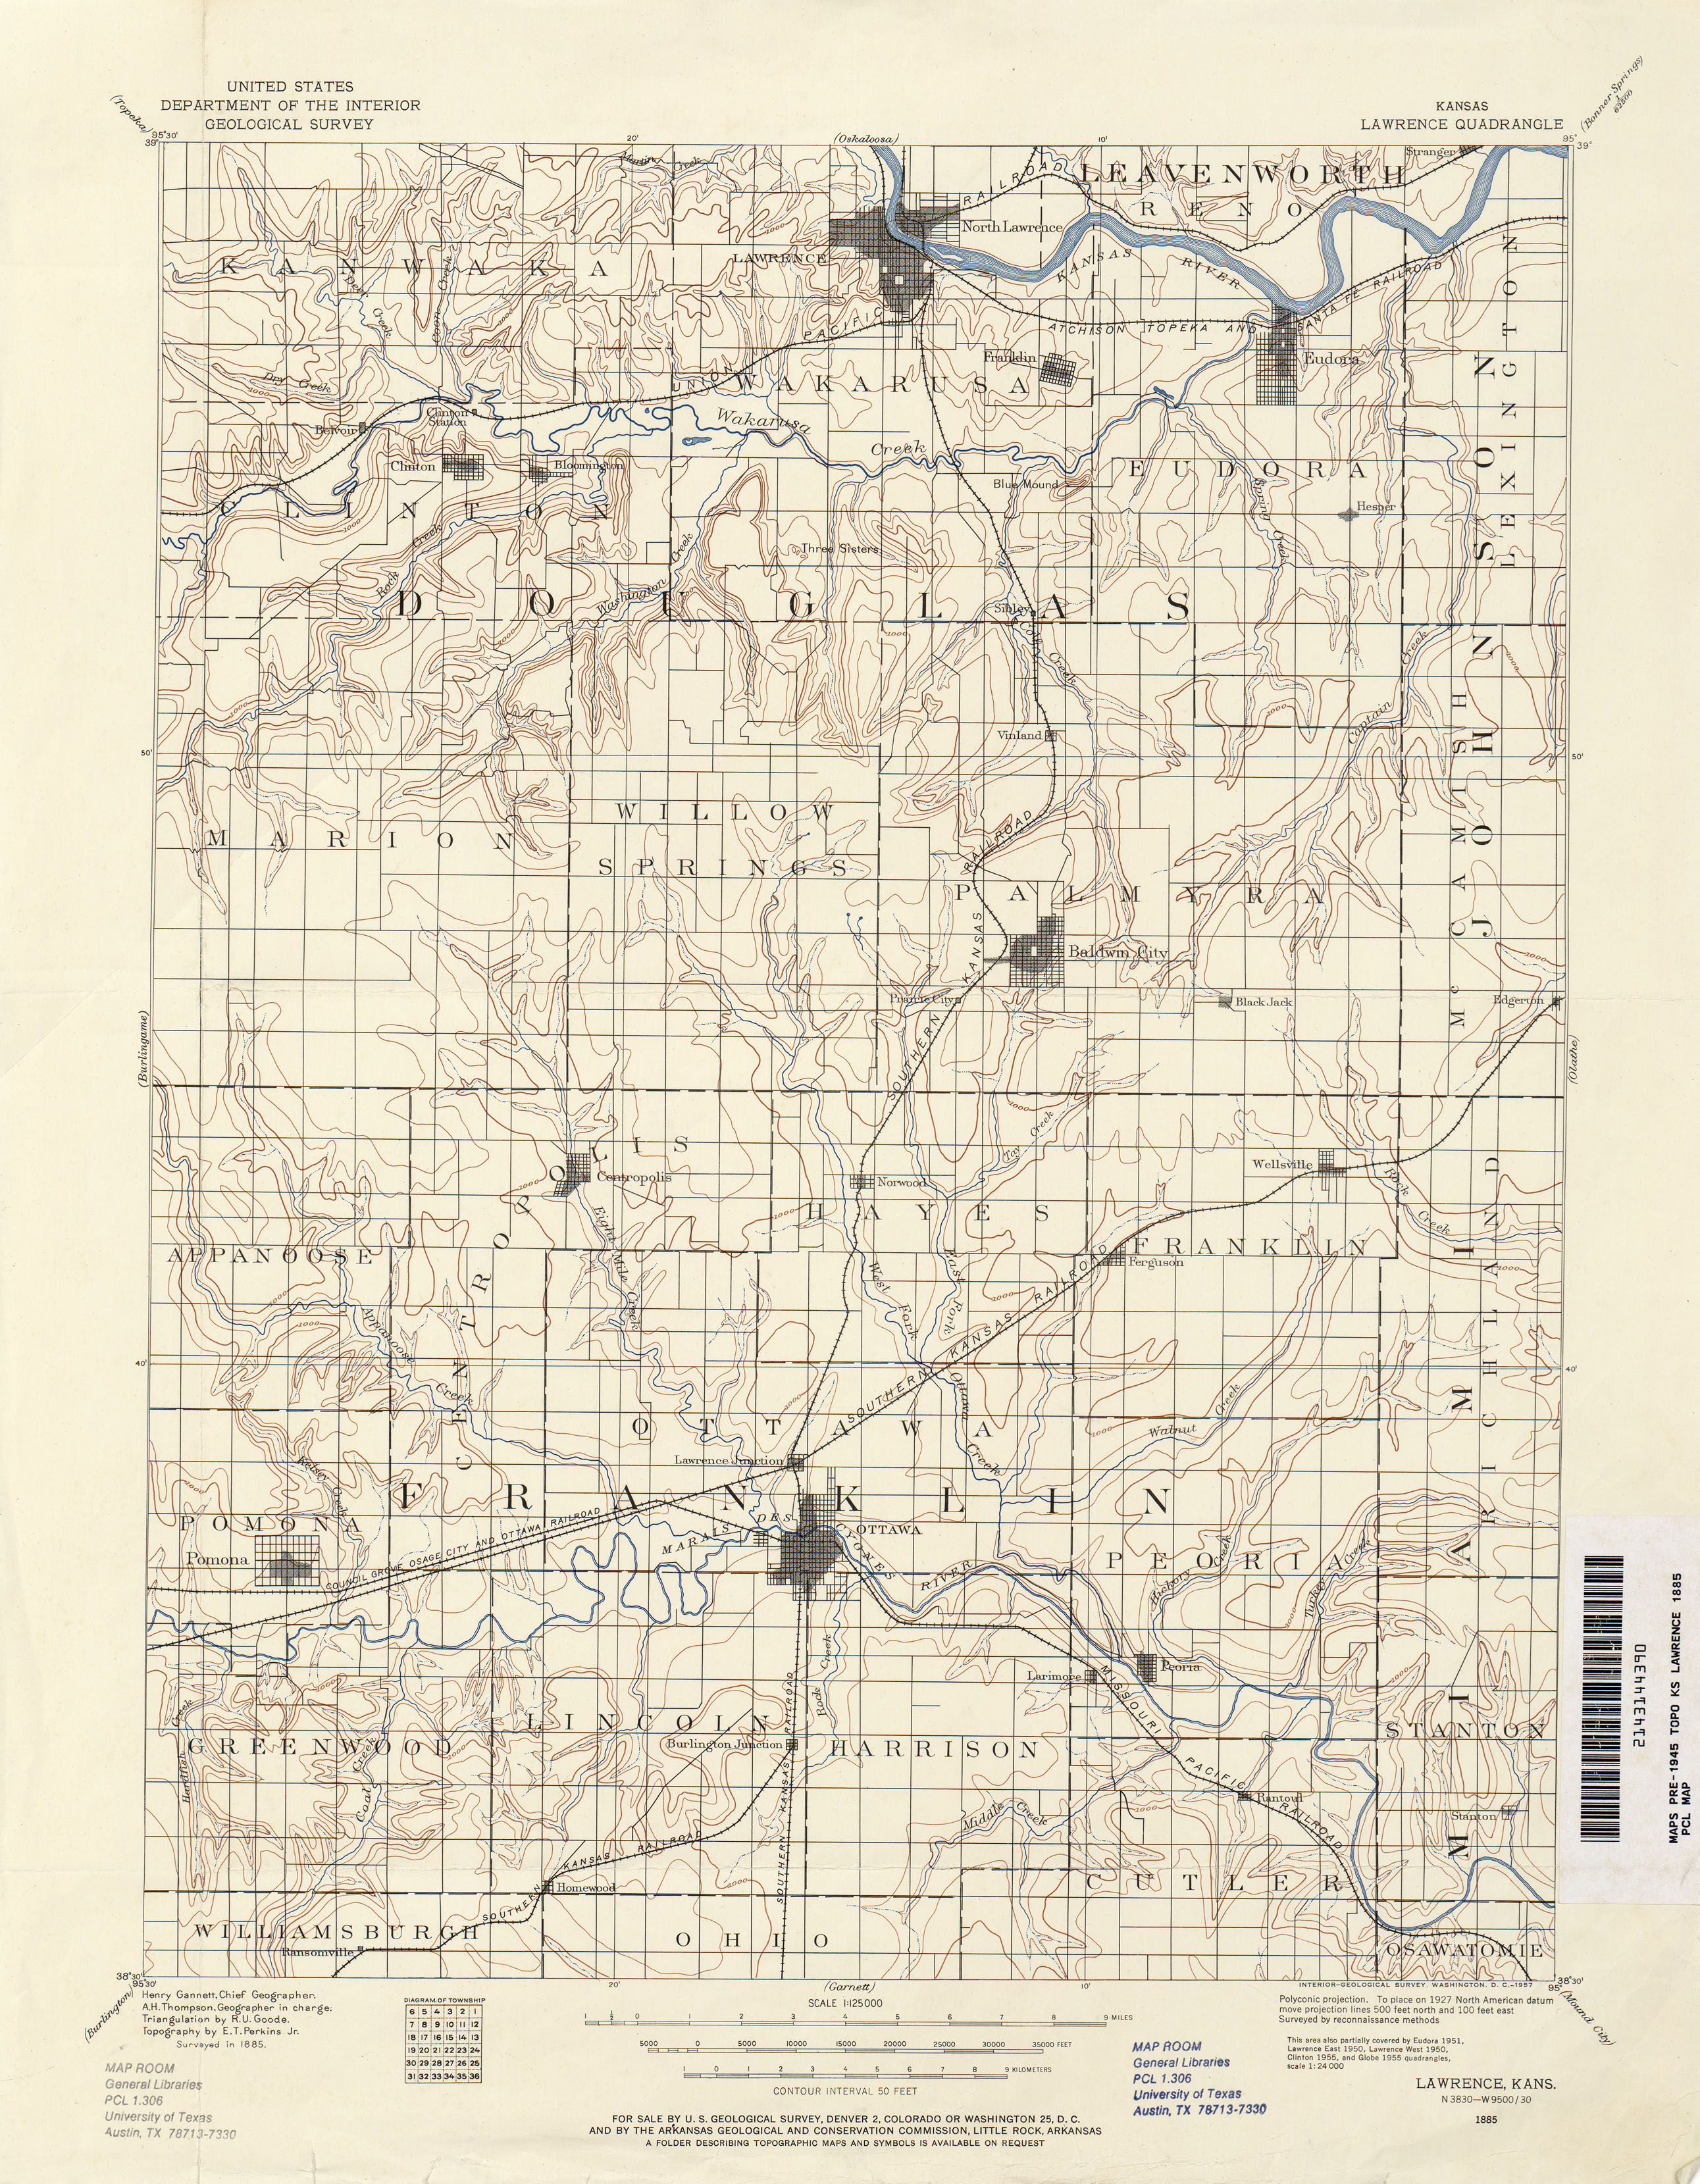 Kansas Historical Topographic Maps - Perry-Castañeda Map Collection on mo map, wy map, oh map, al map, or map, az map, tn map, co map, nm map, ok map, texas map, la map, mi map, mn map, ca map, ma map, wa map, ms map, ne map, ak map,